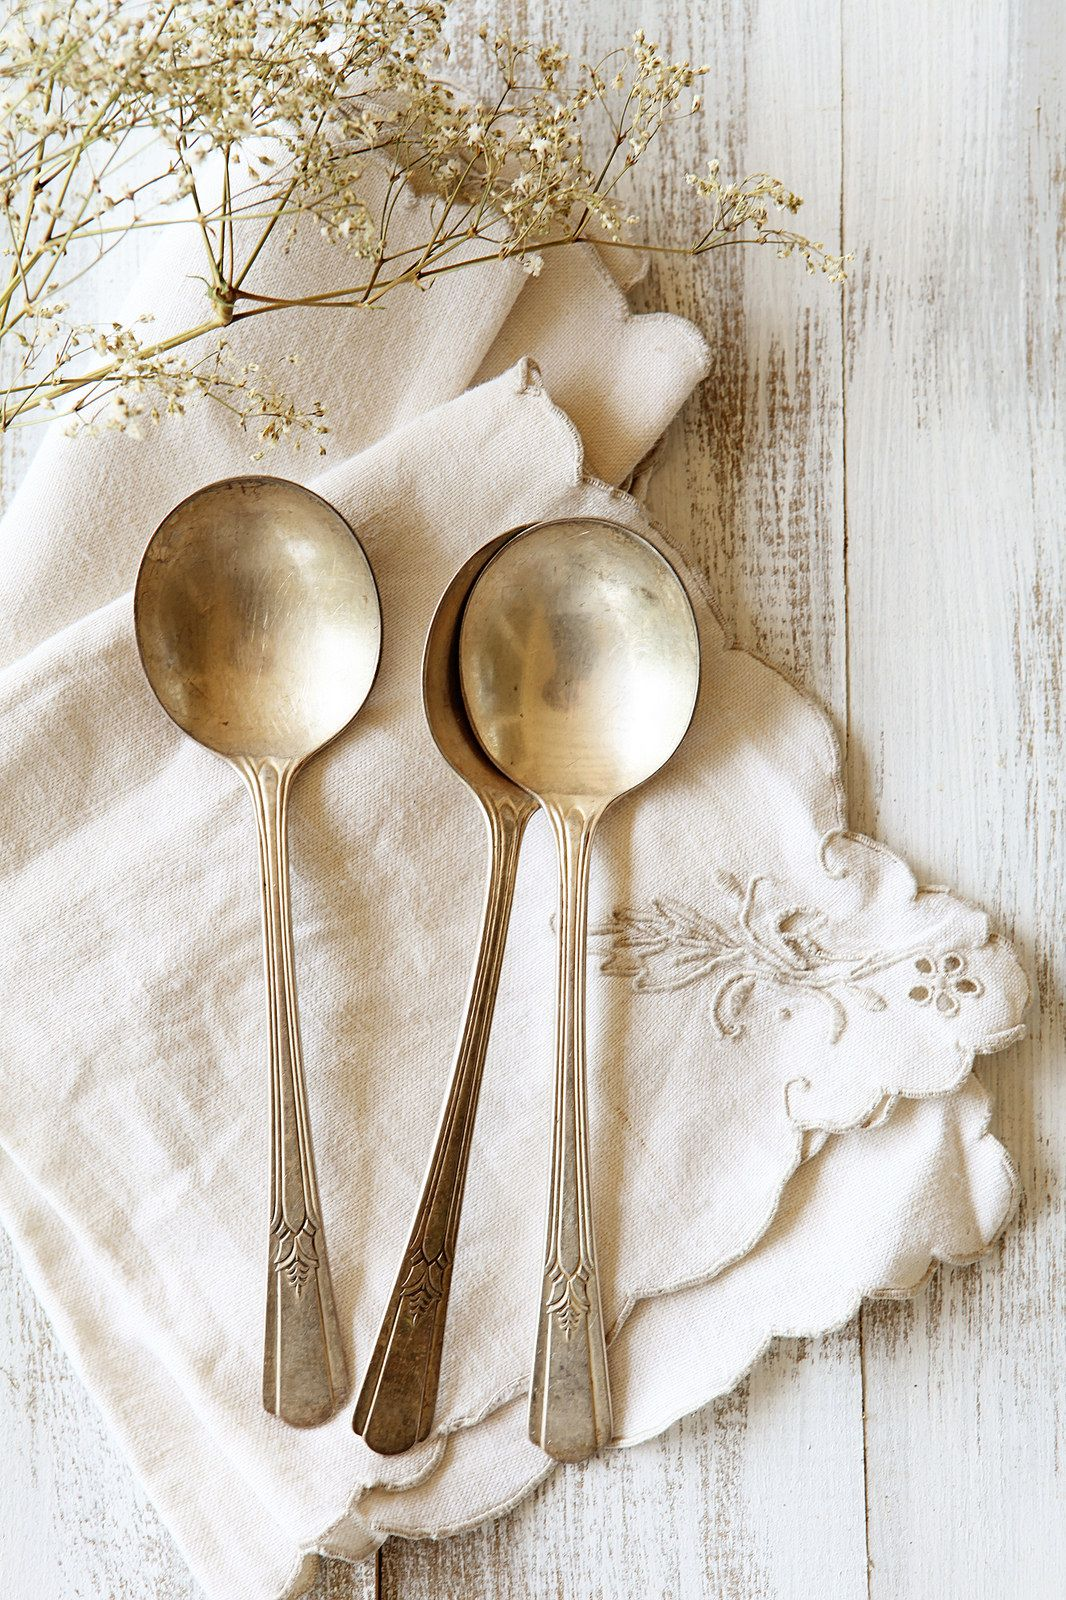 vintage spoons | Flickr - Photo Sharing!